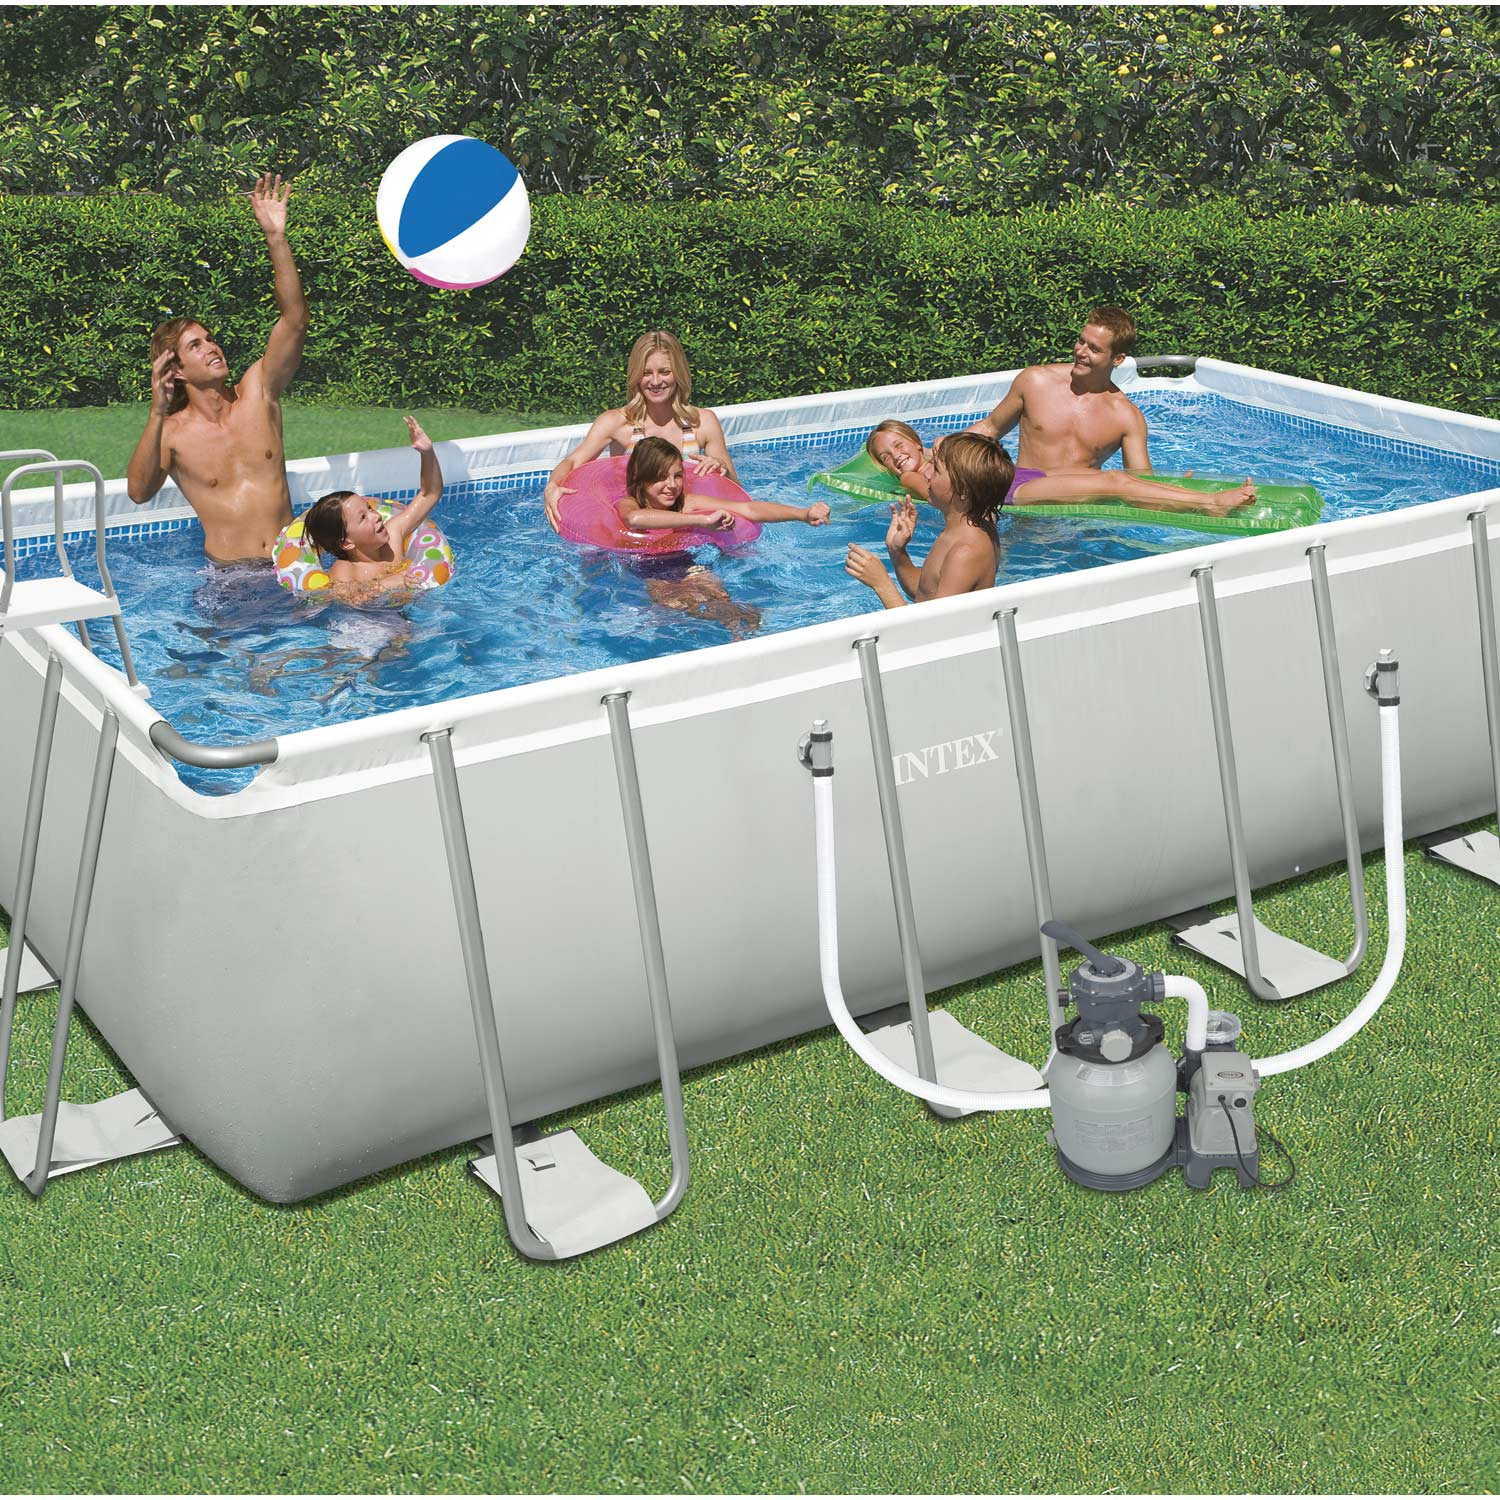 Piscine hors sol autoportante tubulaire ultra silver intex for Piscine hors sol 10x5m